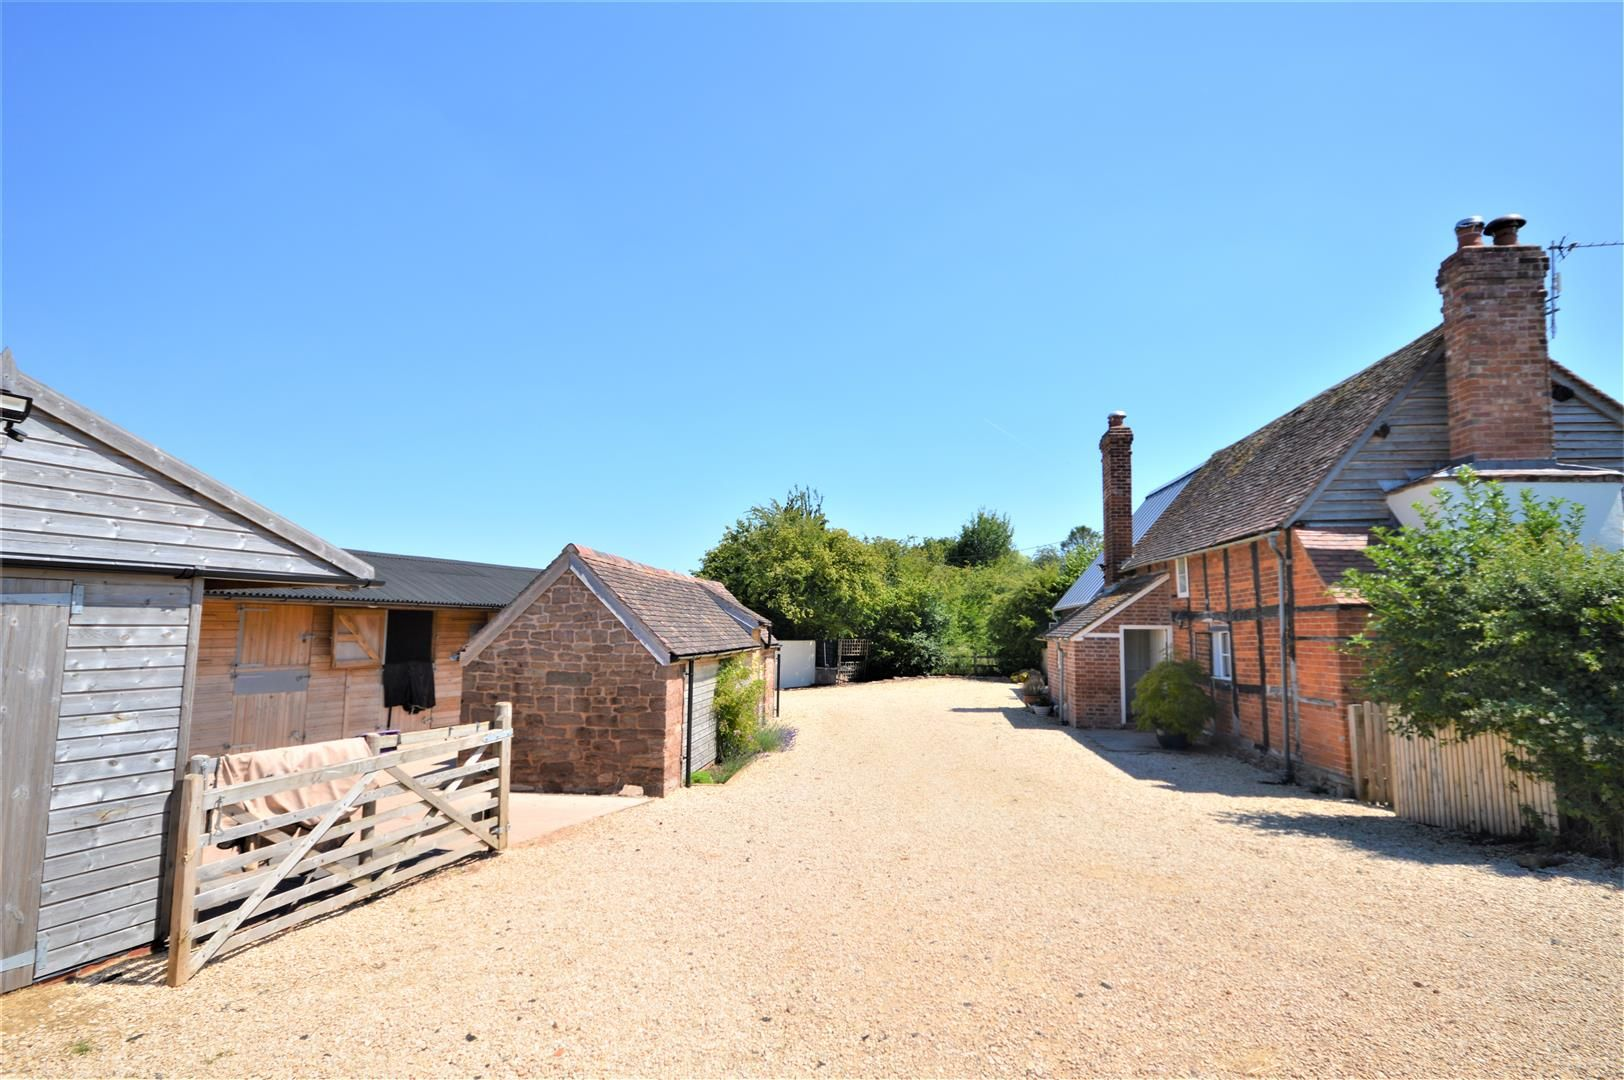 3 bed detached for sale in Canon Frome  - Property Image 8